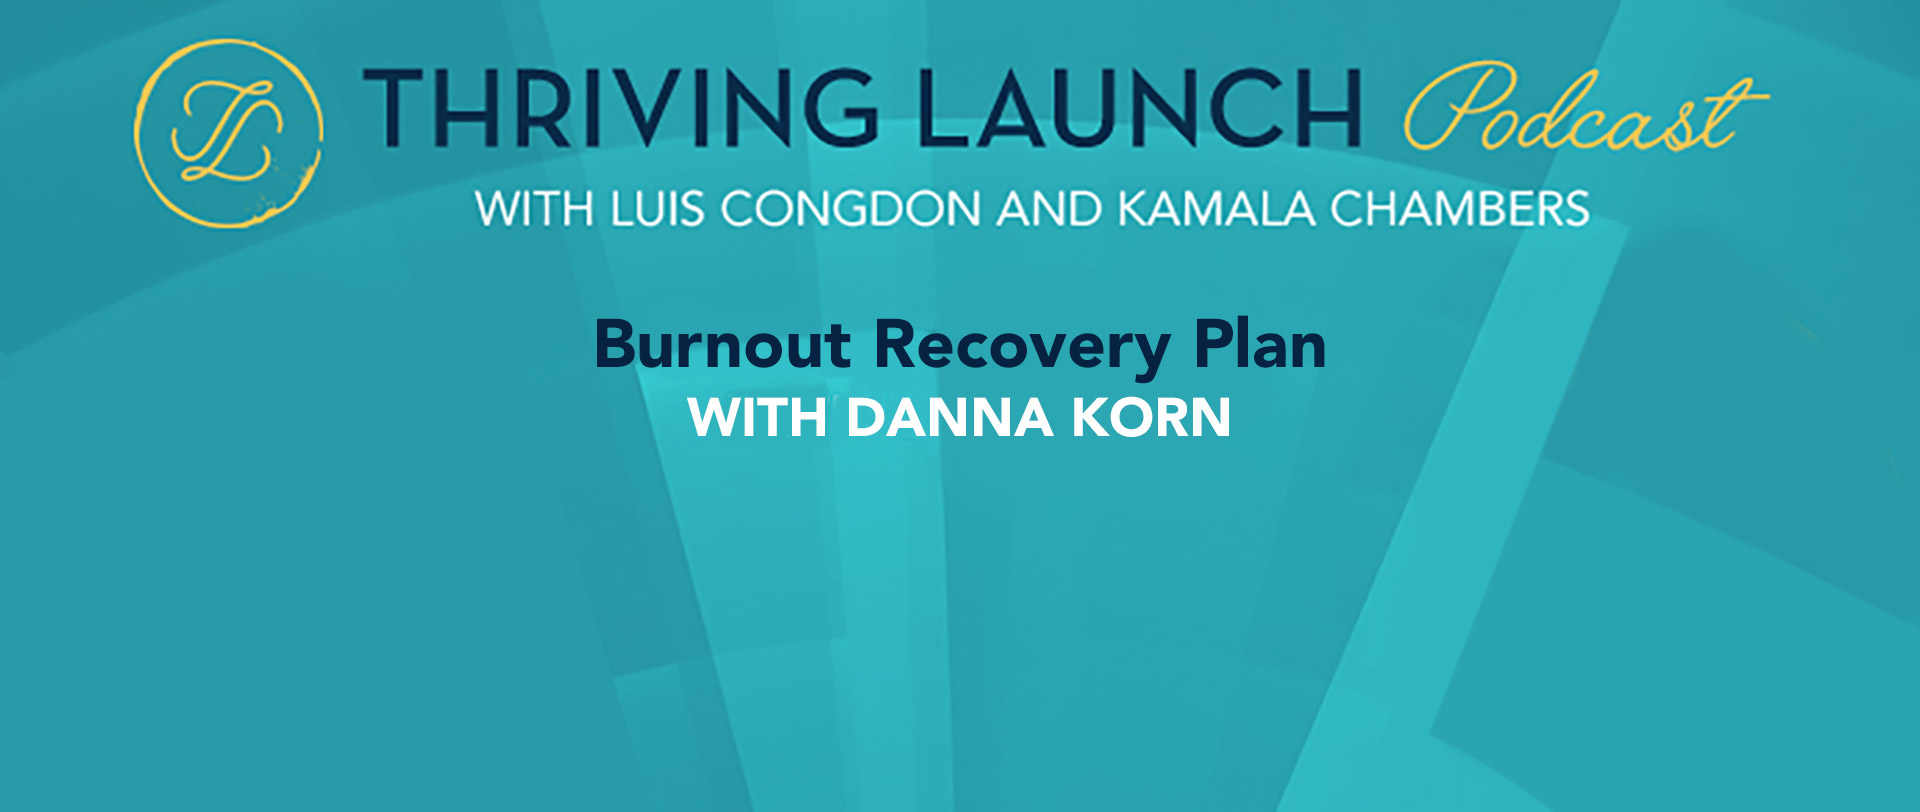 Thriving Launch - Burnout Recovery